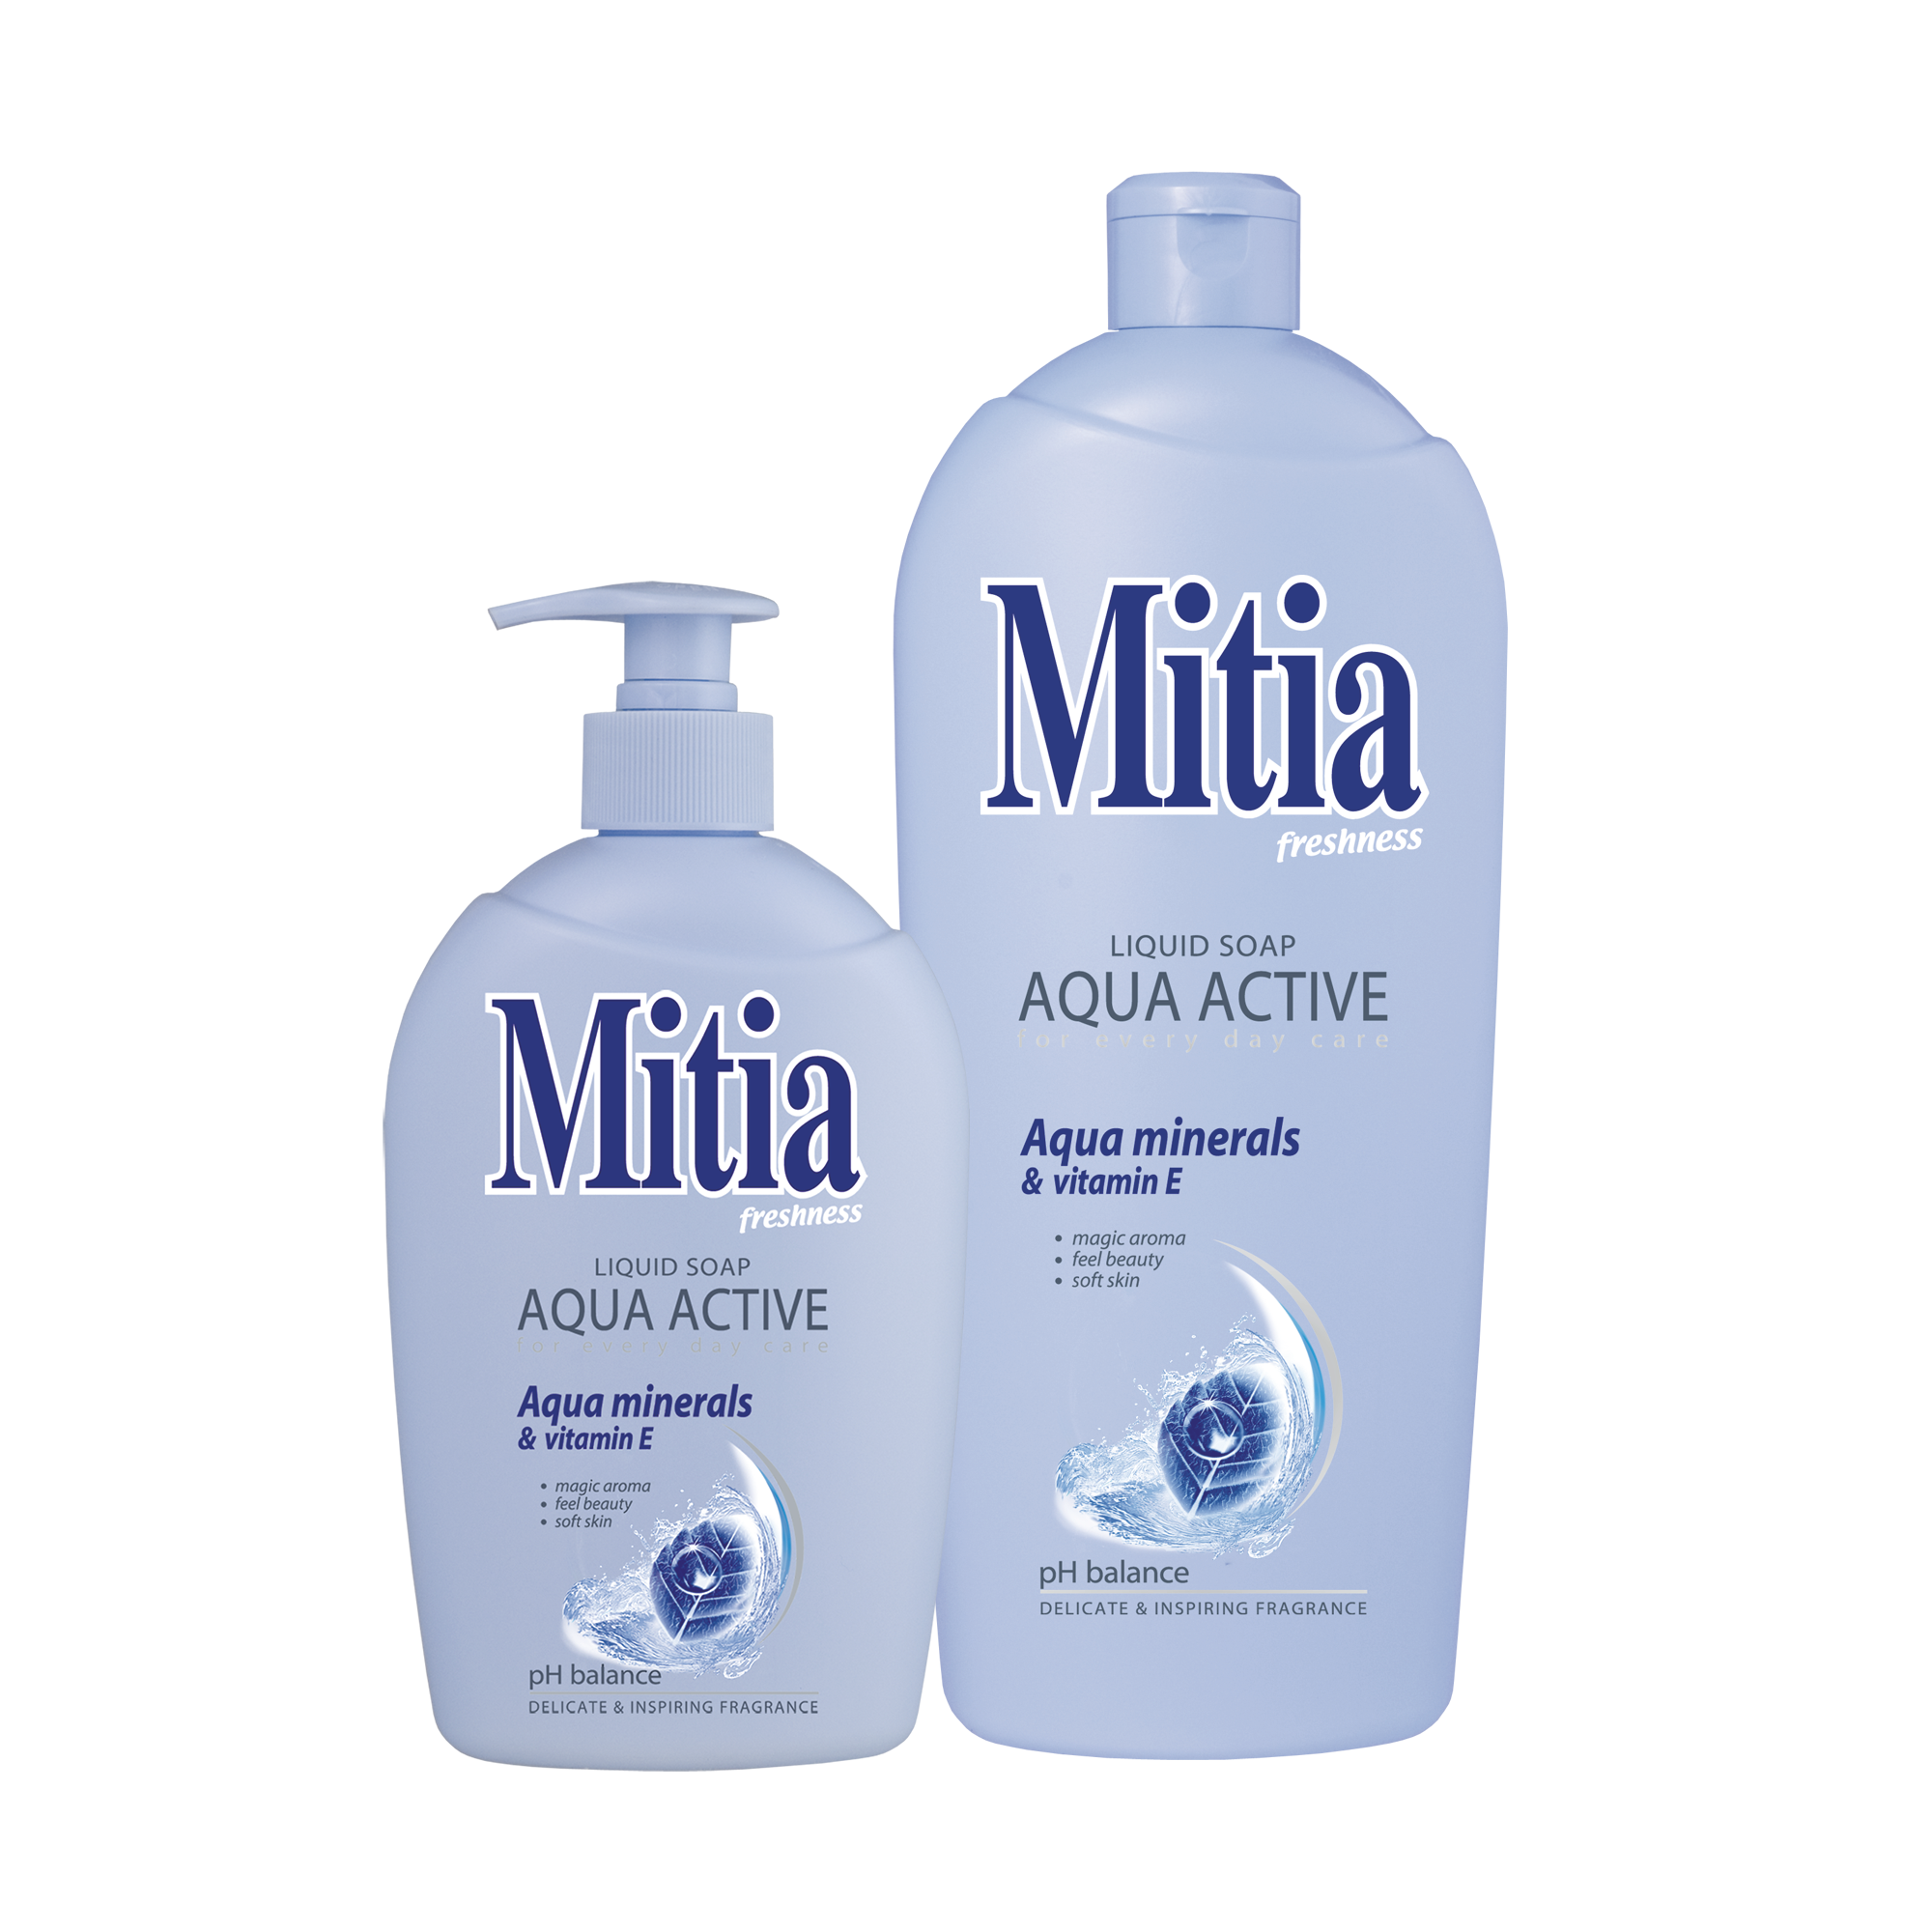 Mitia Aqua active liquid soap